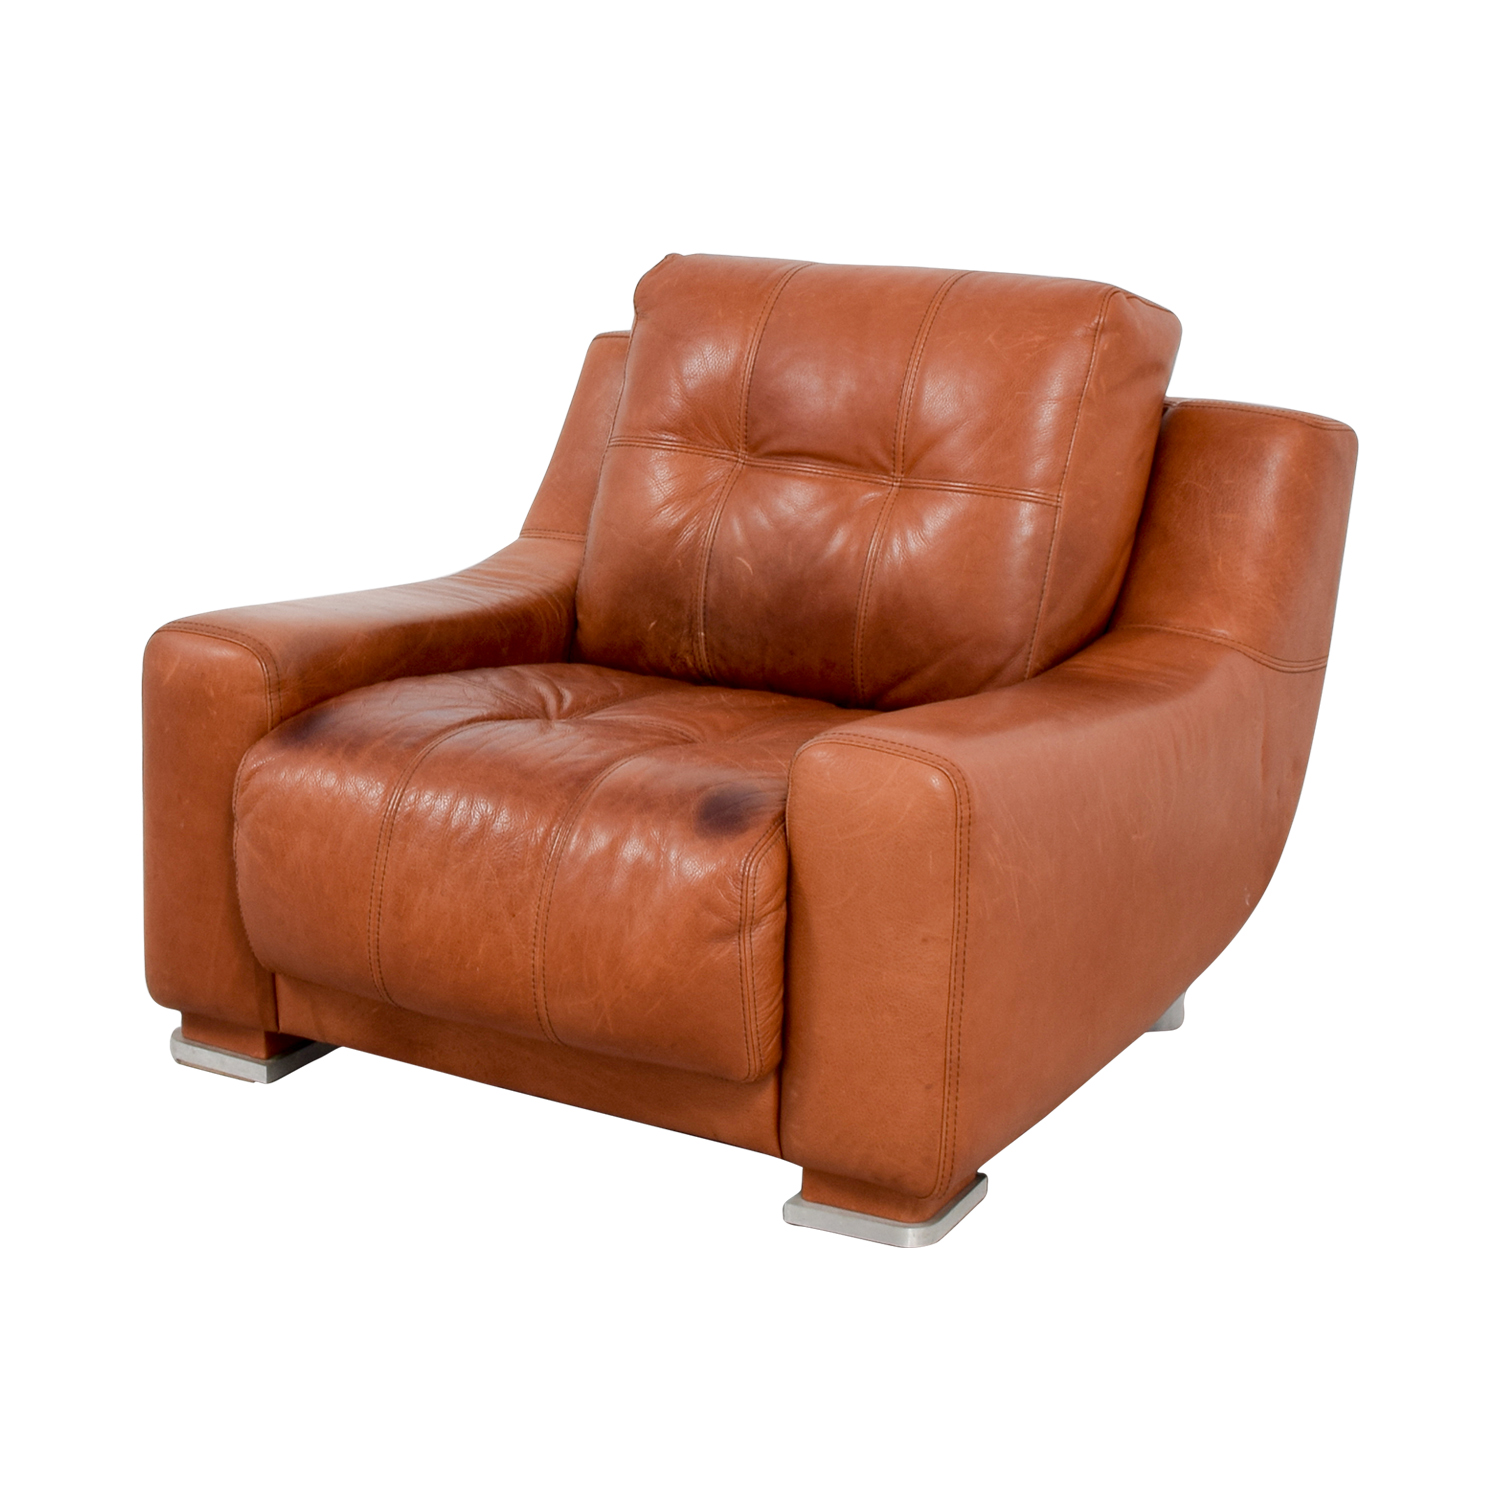 56% OFF Contempo Contempo Leather Accent Chair Chairs